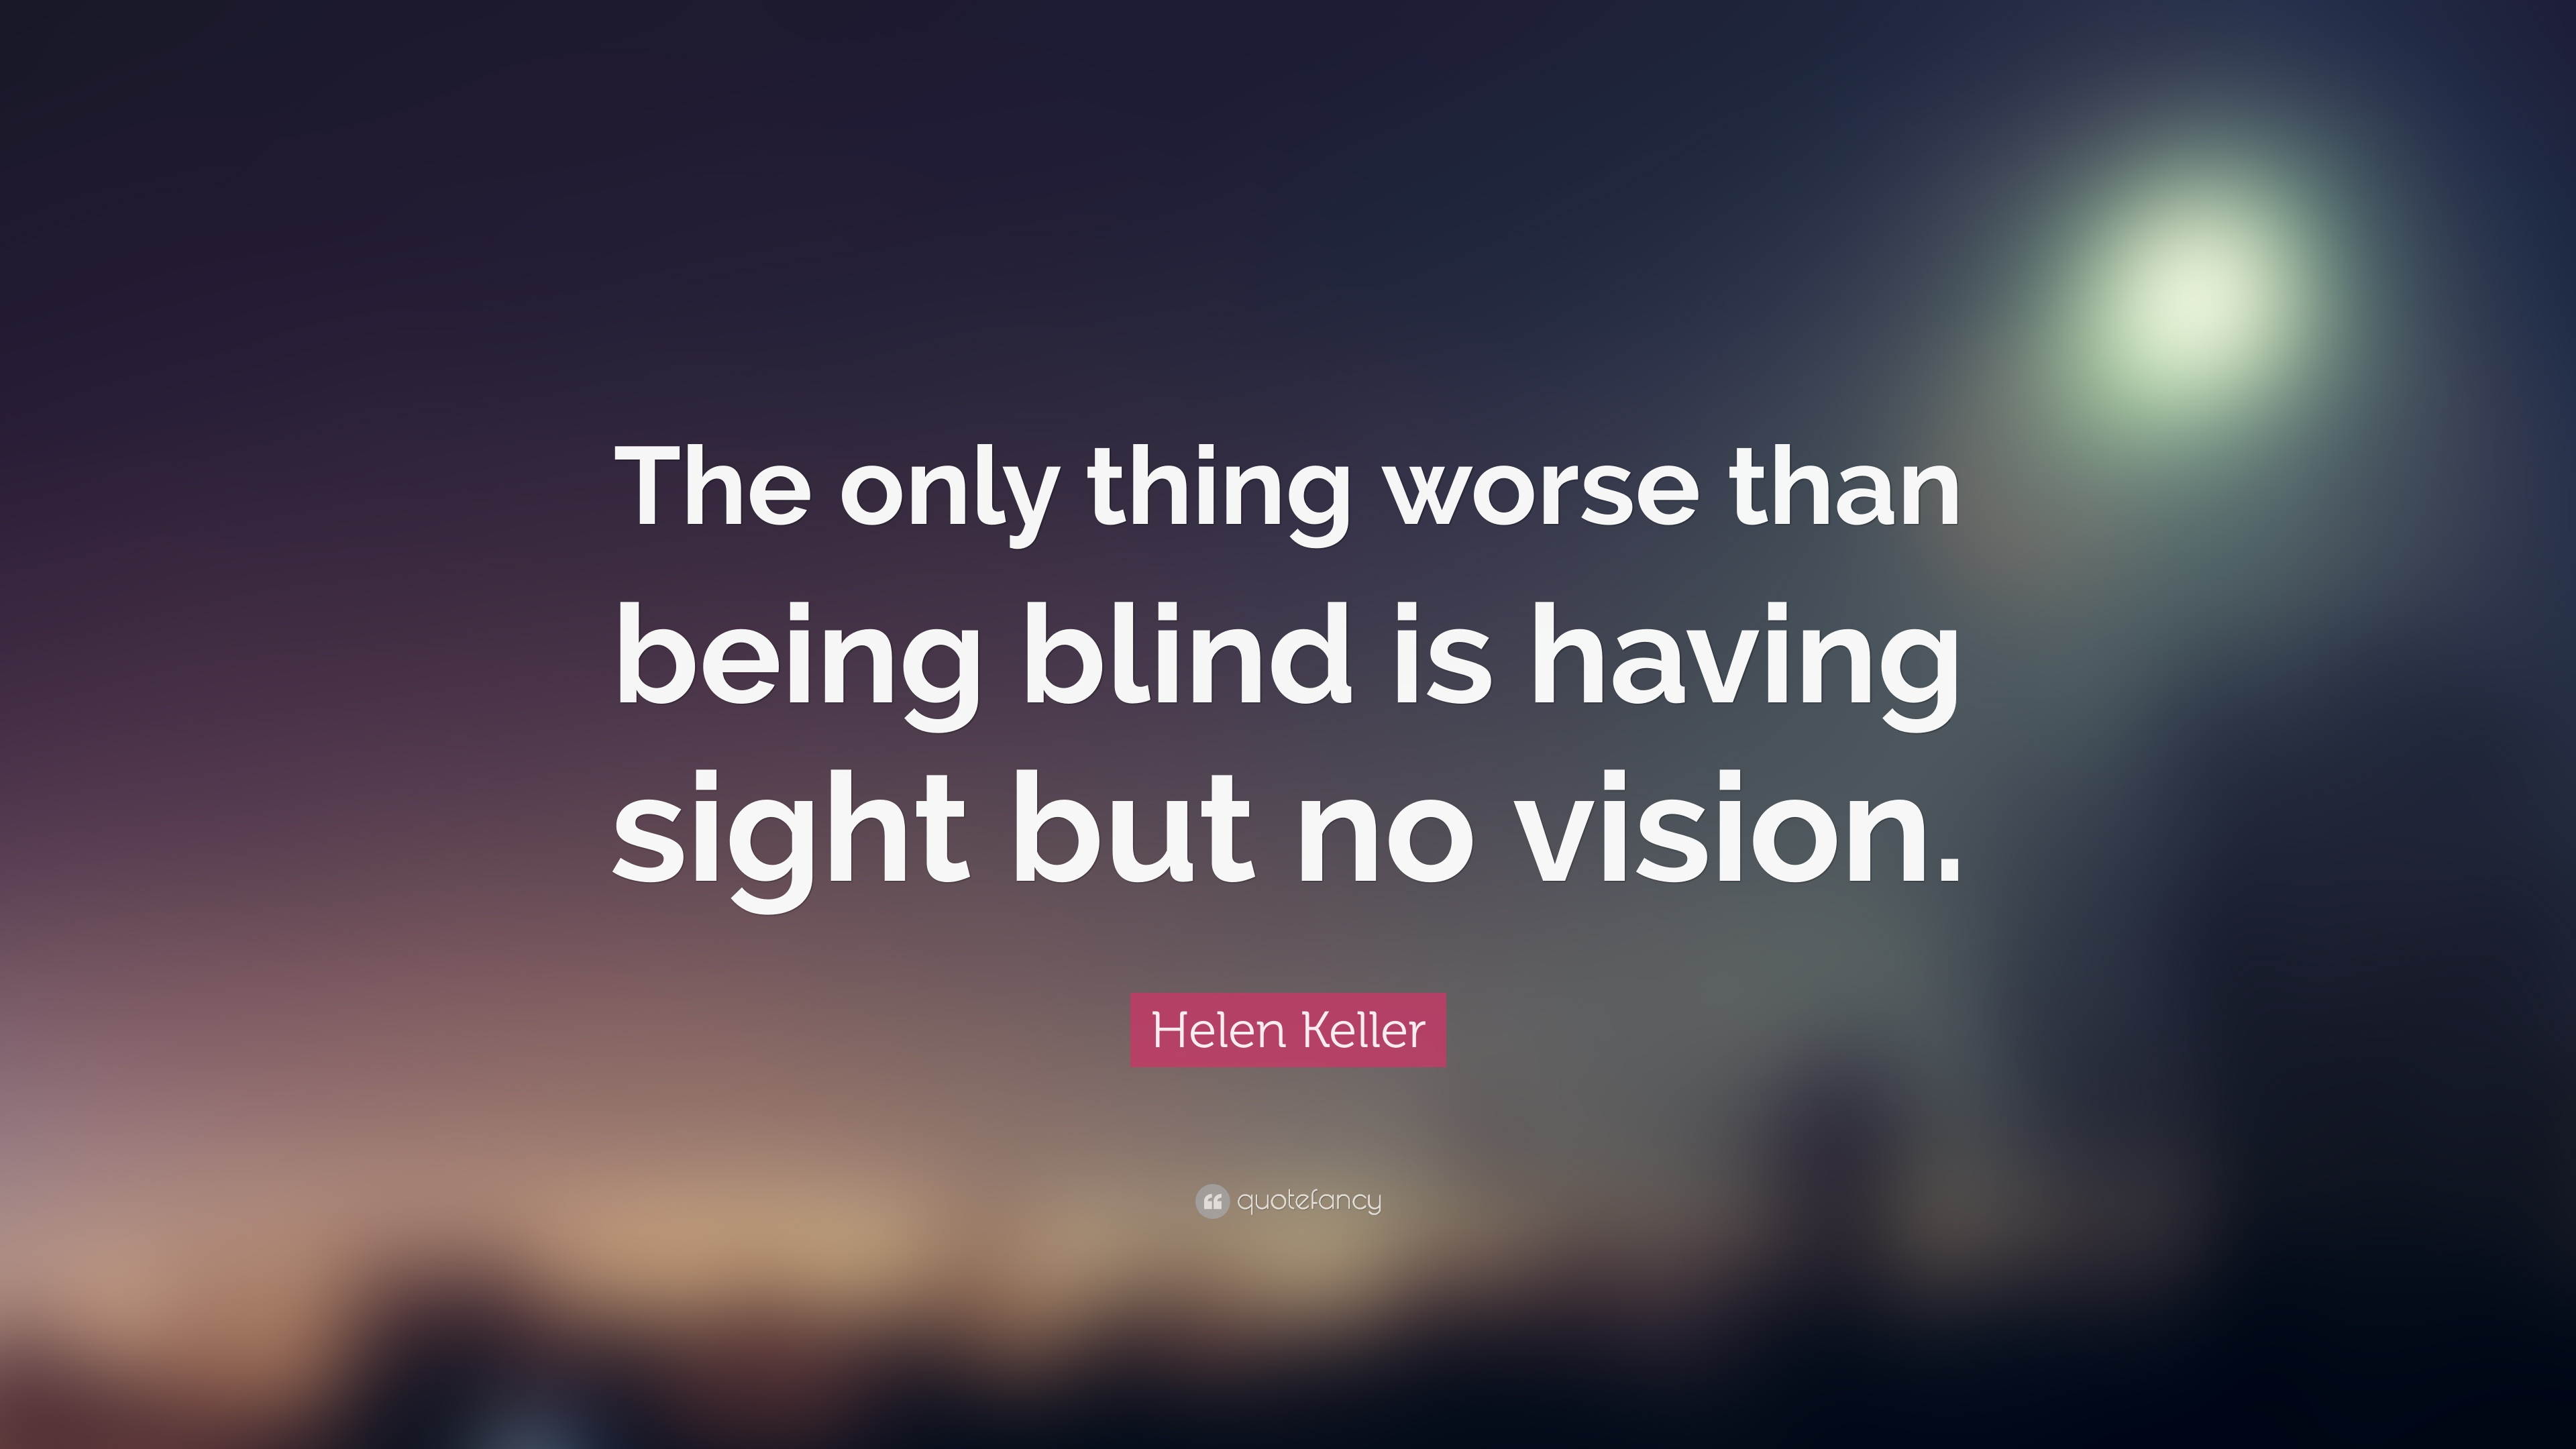 31525-Helen-Keller-Quote-The-only-thing-worse-than-being-blind-is-having.jpg